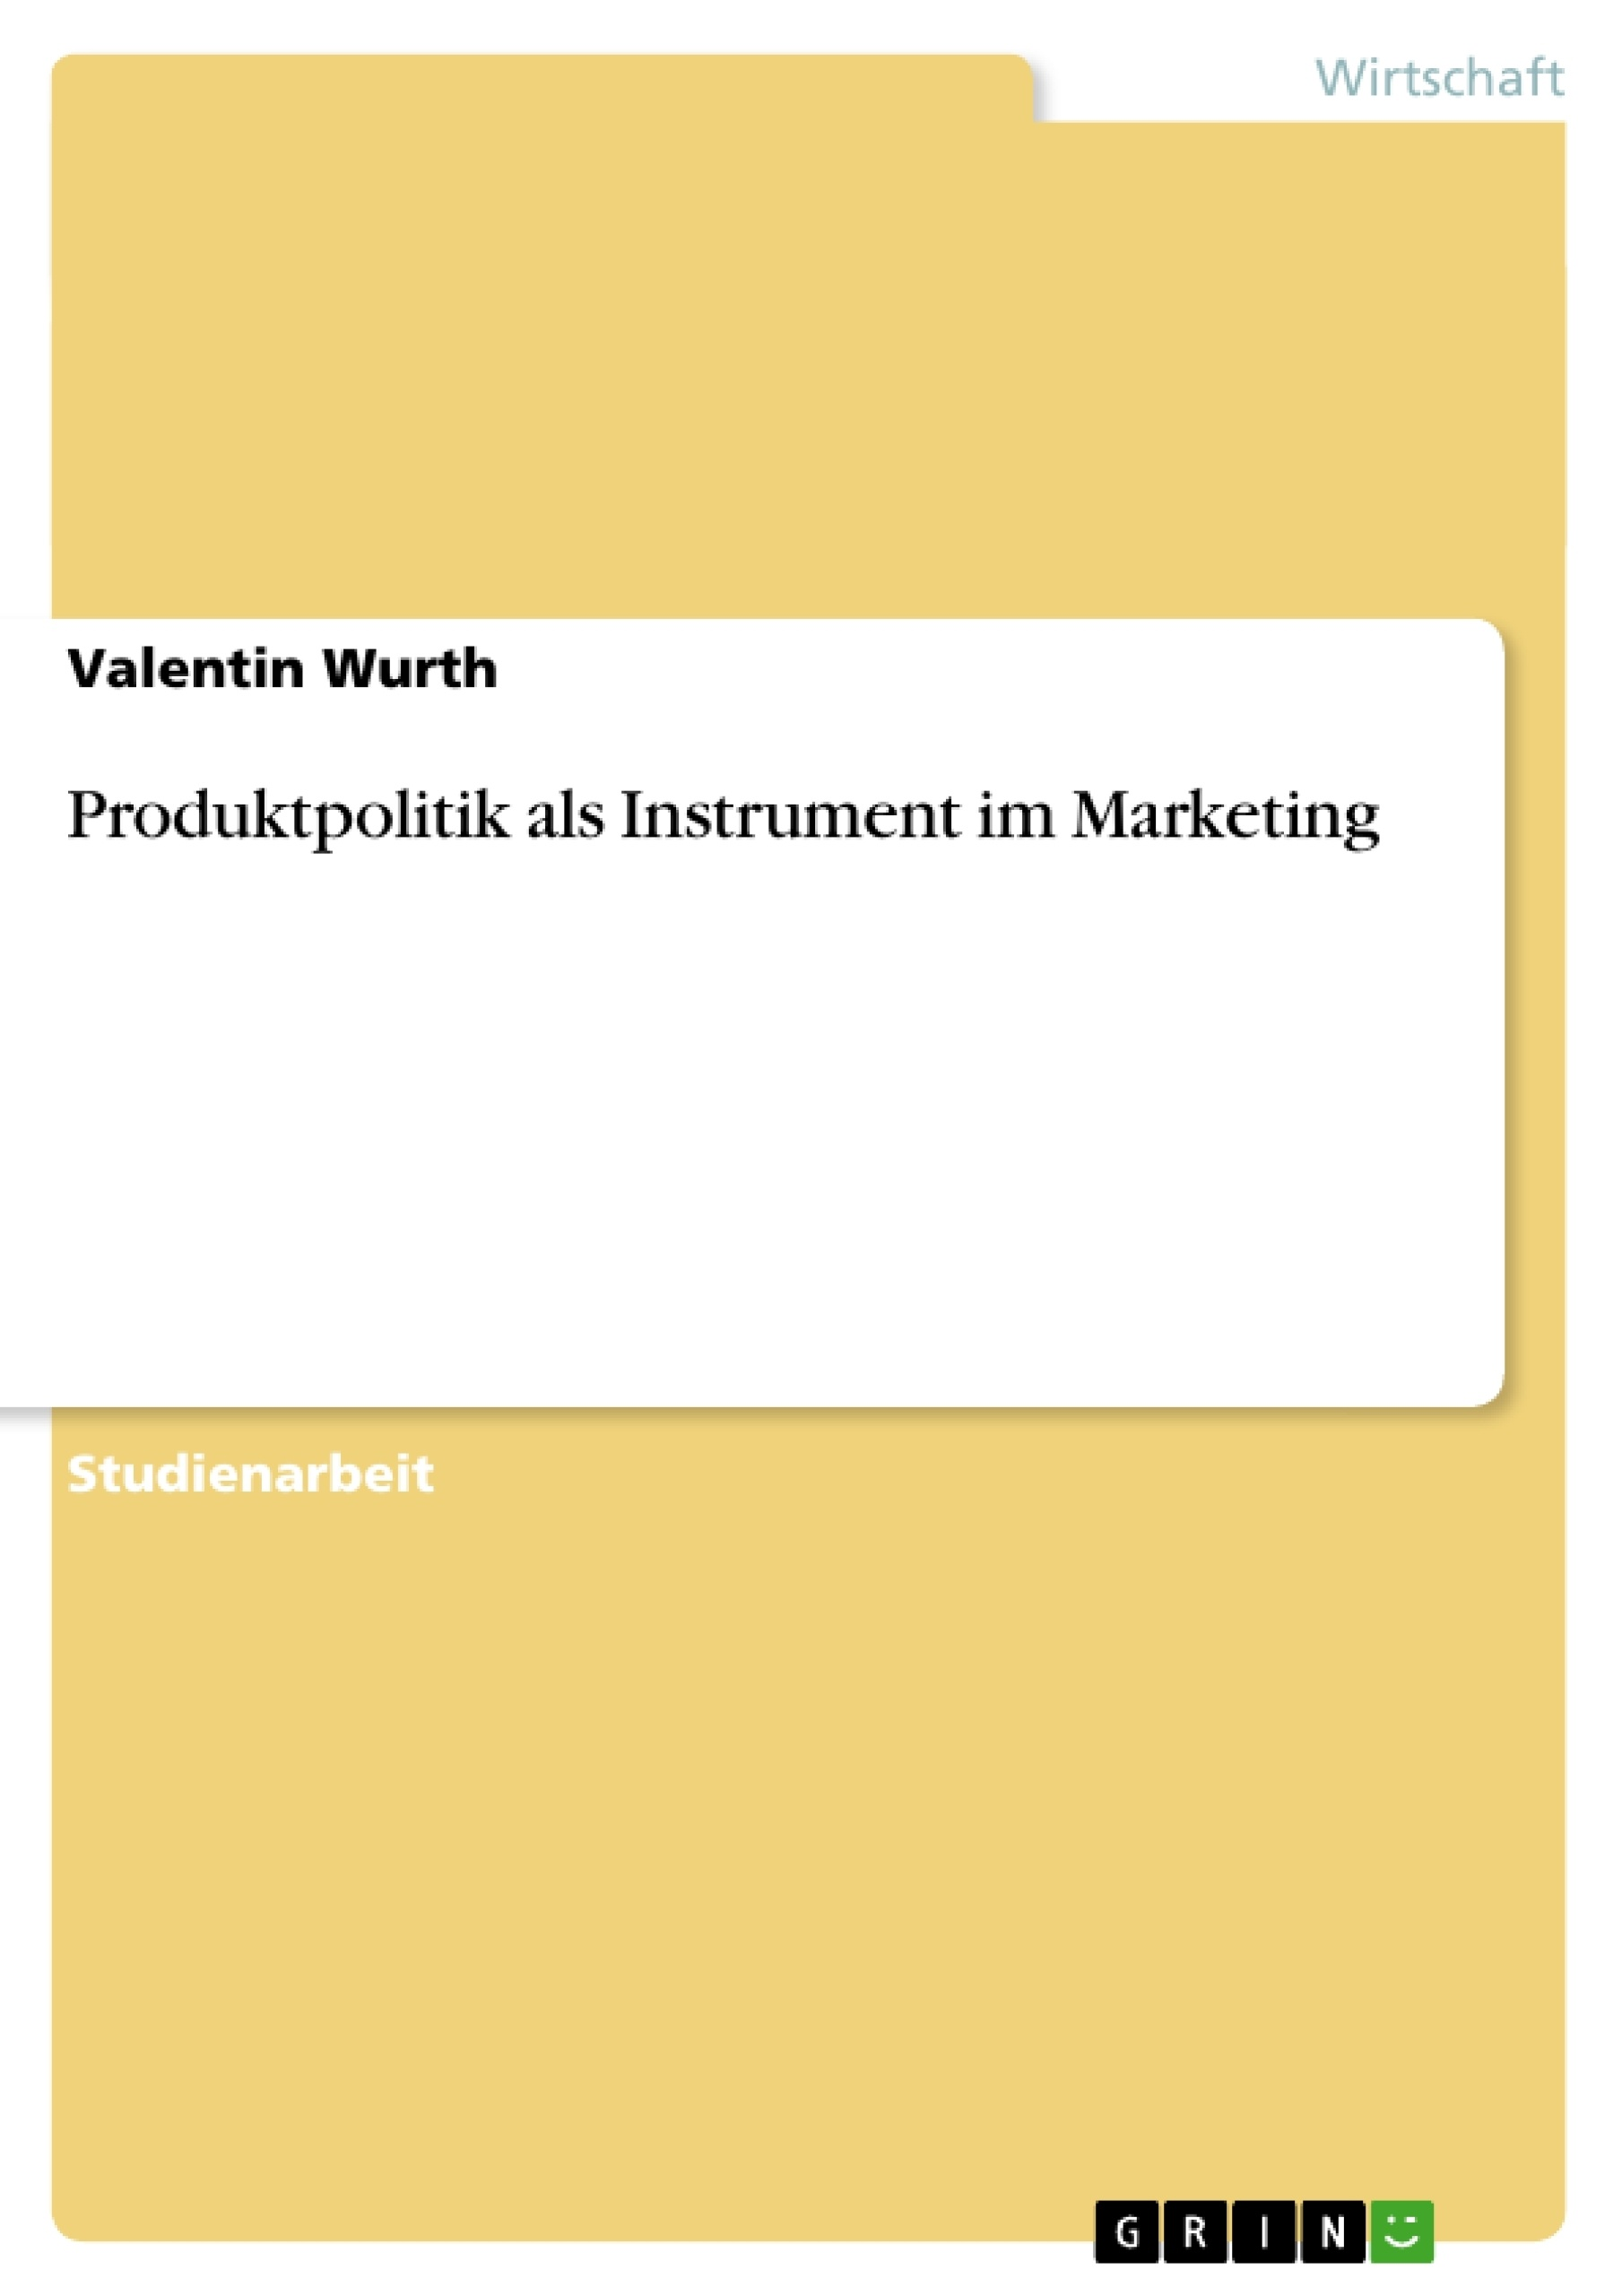 Titel: Produktpolitik als Instrument im Marketing